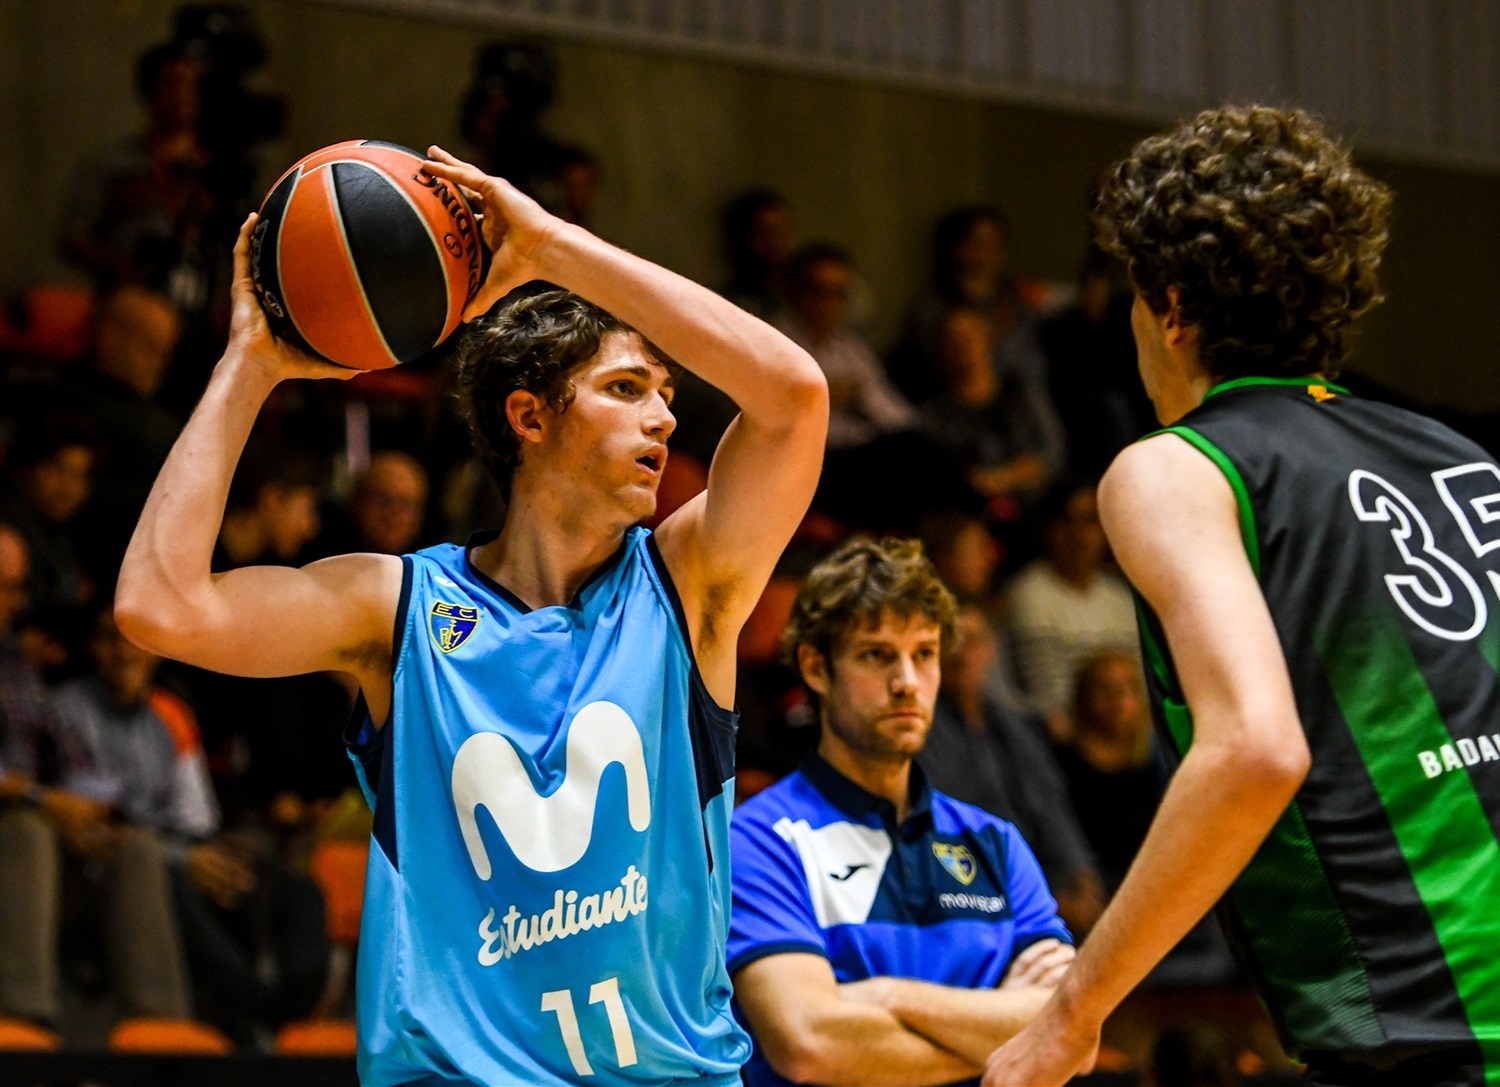 Hector Alderete - U18 Movistar Estudiantes Madrid (photo Miguel Angel Polo - Valencia) - JT18